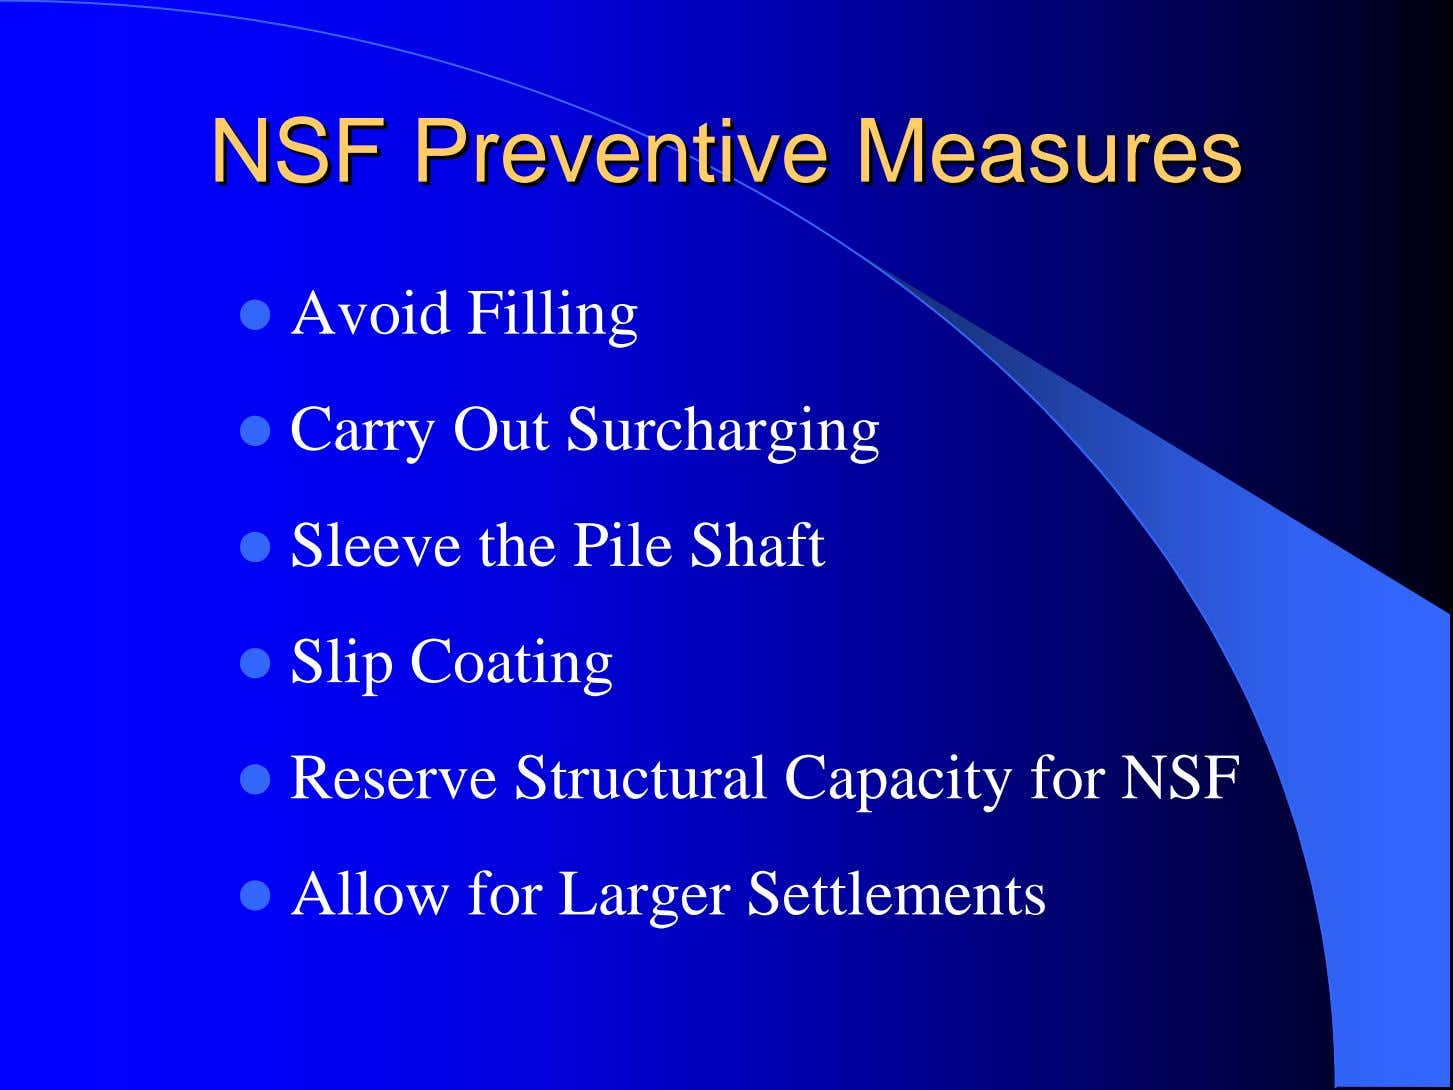 NSFNSF PreventivePreventive MeasuresMeasures Avoid Filling Carry Out Surcharging Sleeve the Pile Shaft Slip